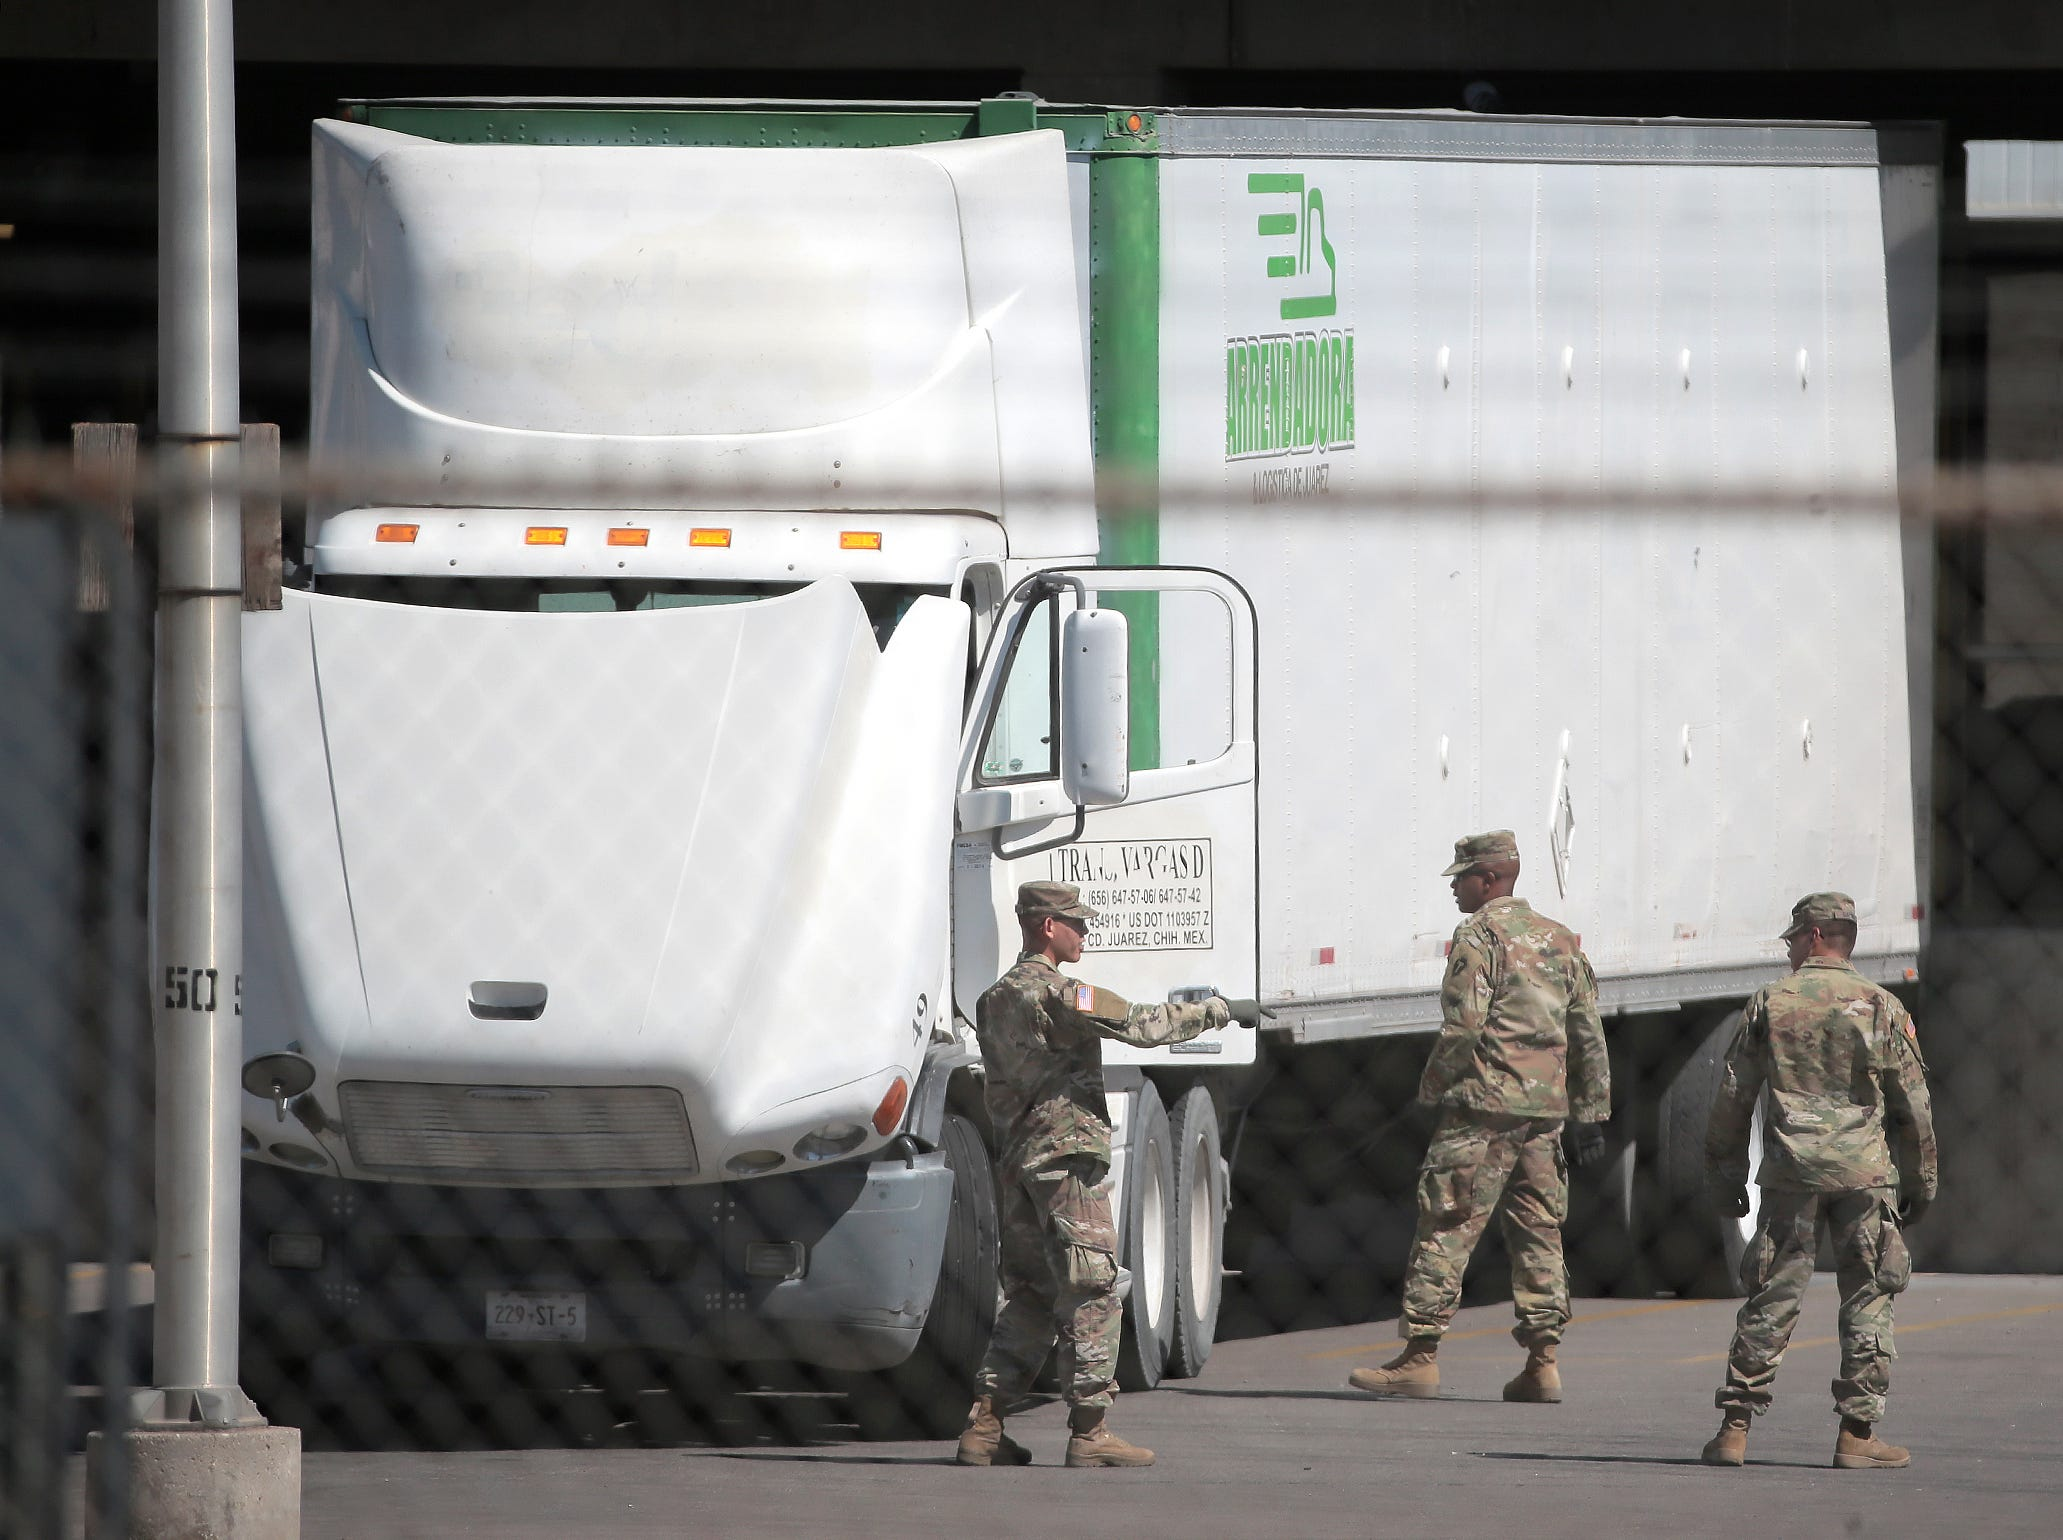 Soldiers inspect trucks at the Cordova Bridge Wednesday.